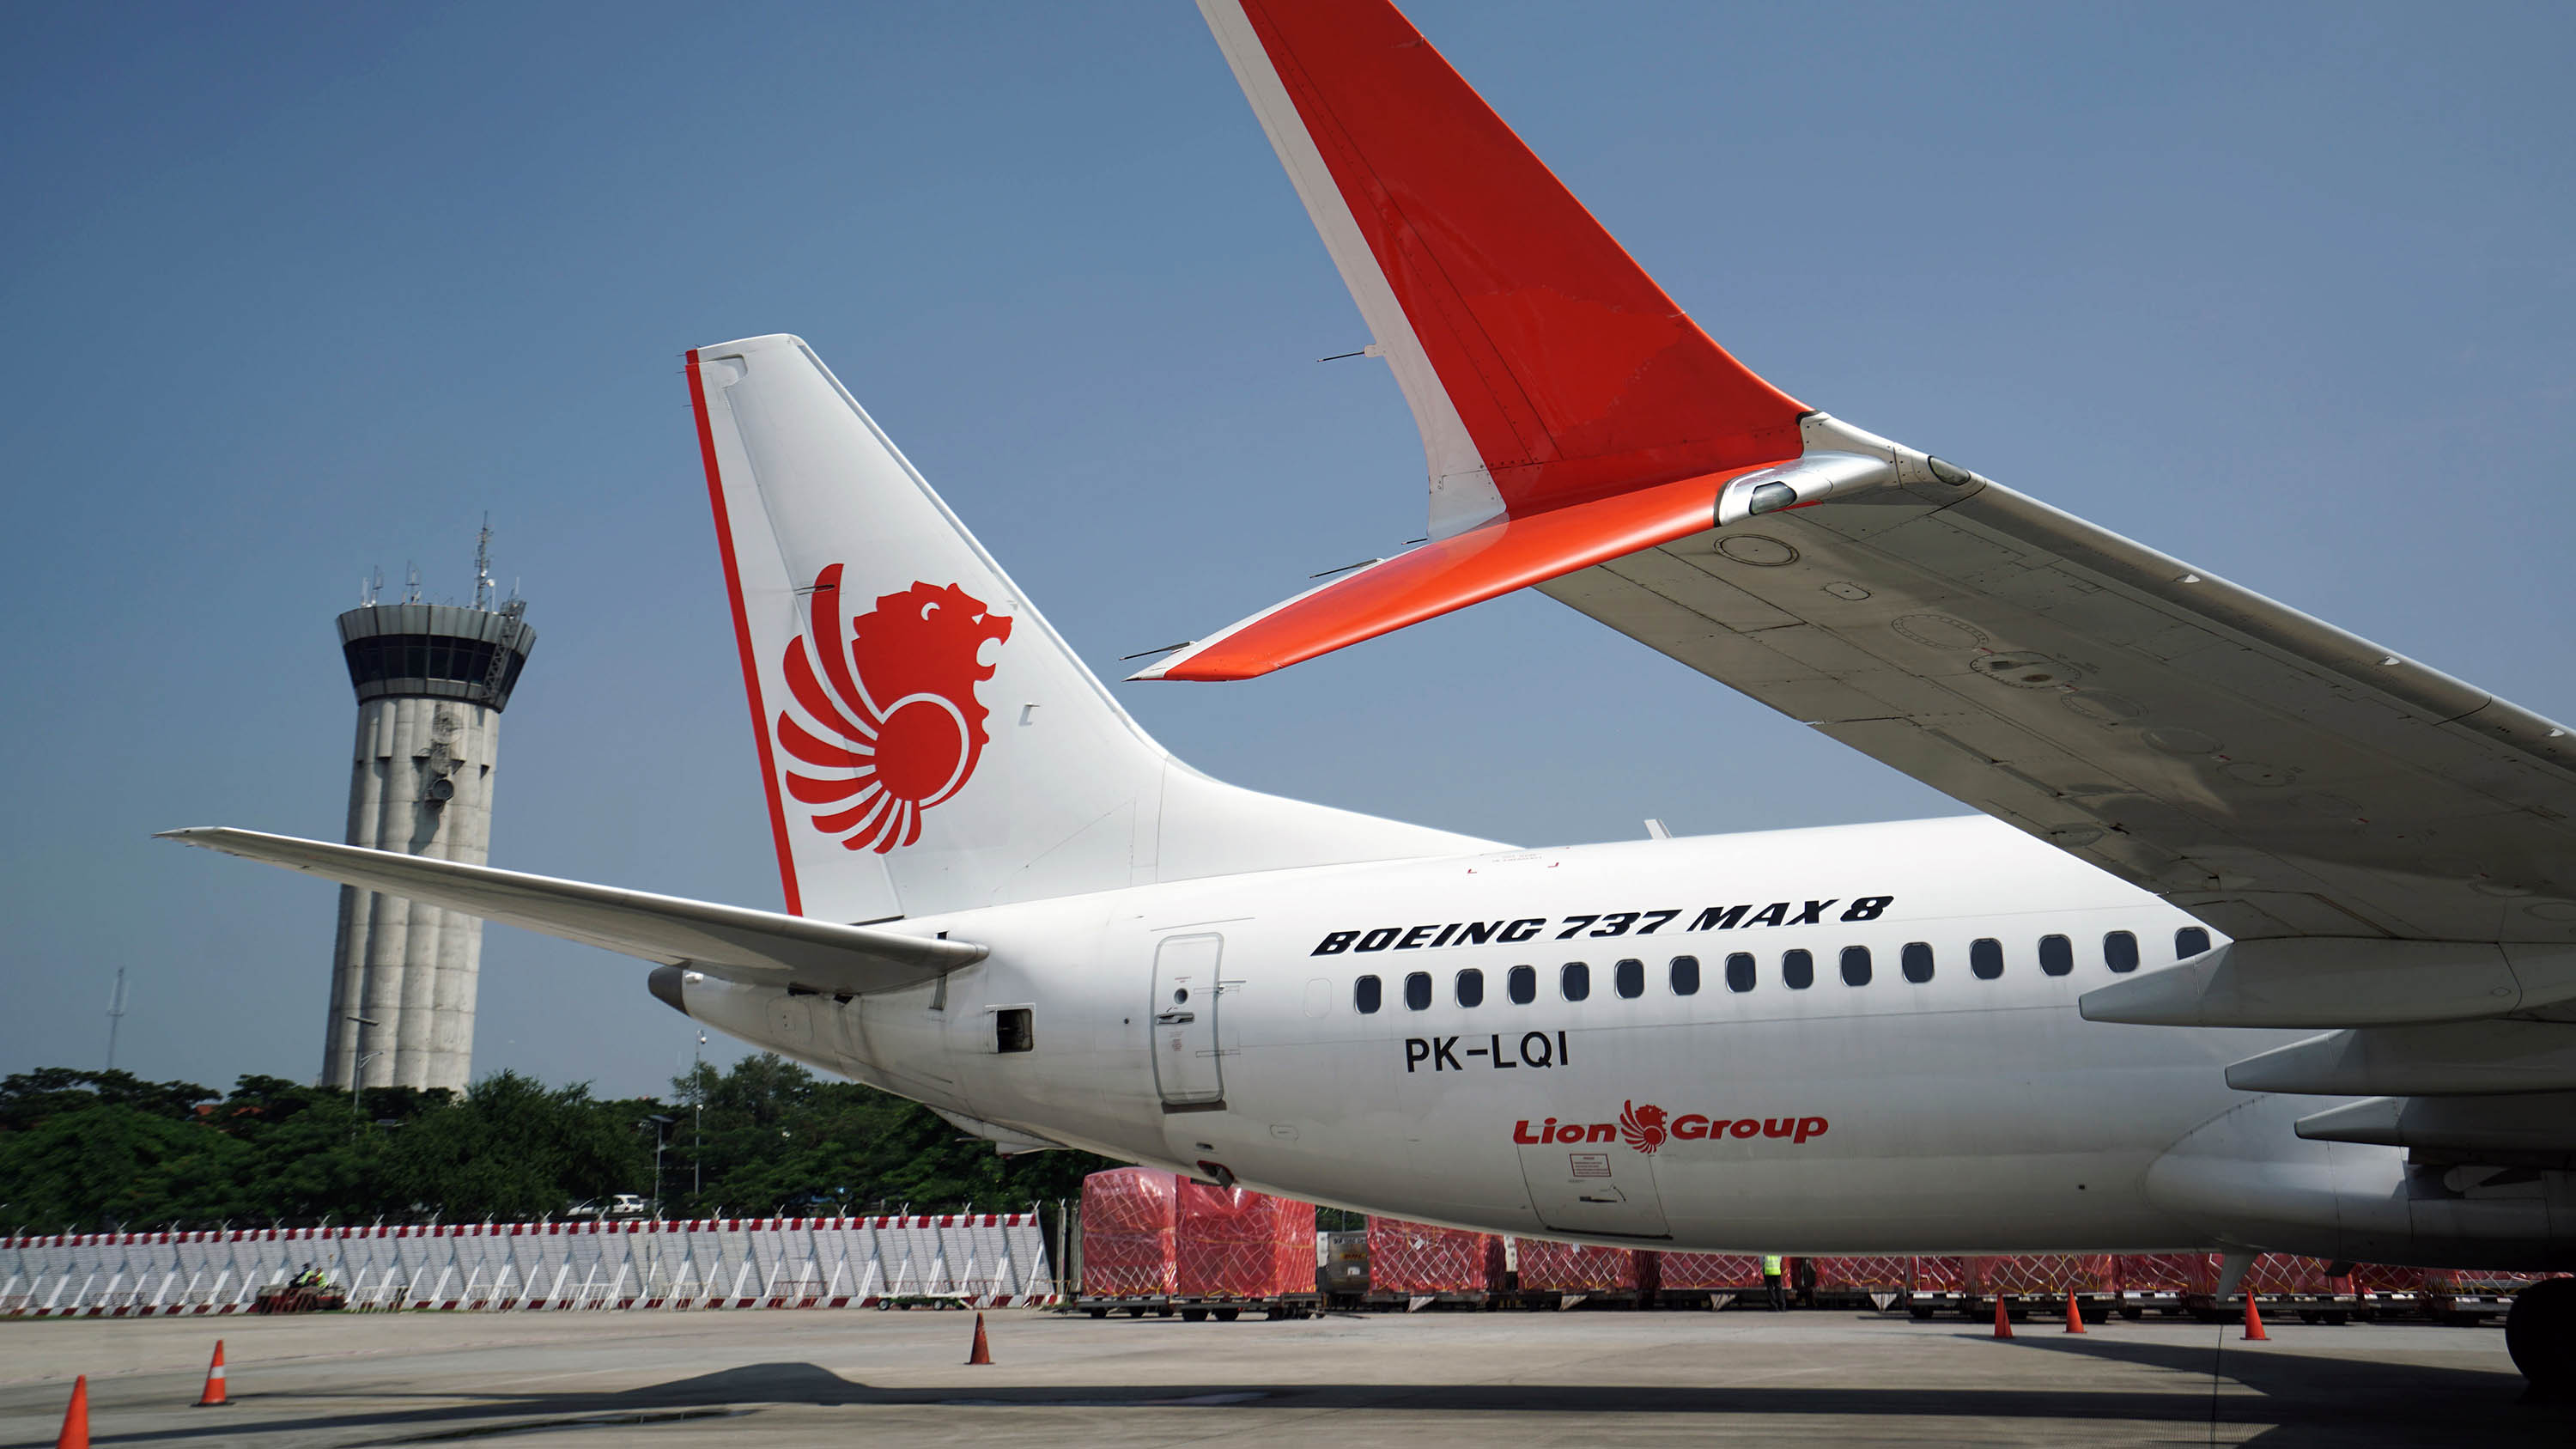 Report Off Duty Pilot Saved Lion Air Flight Day Before Crash